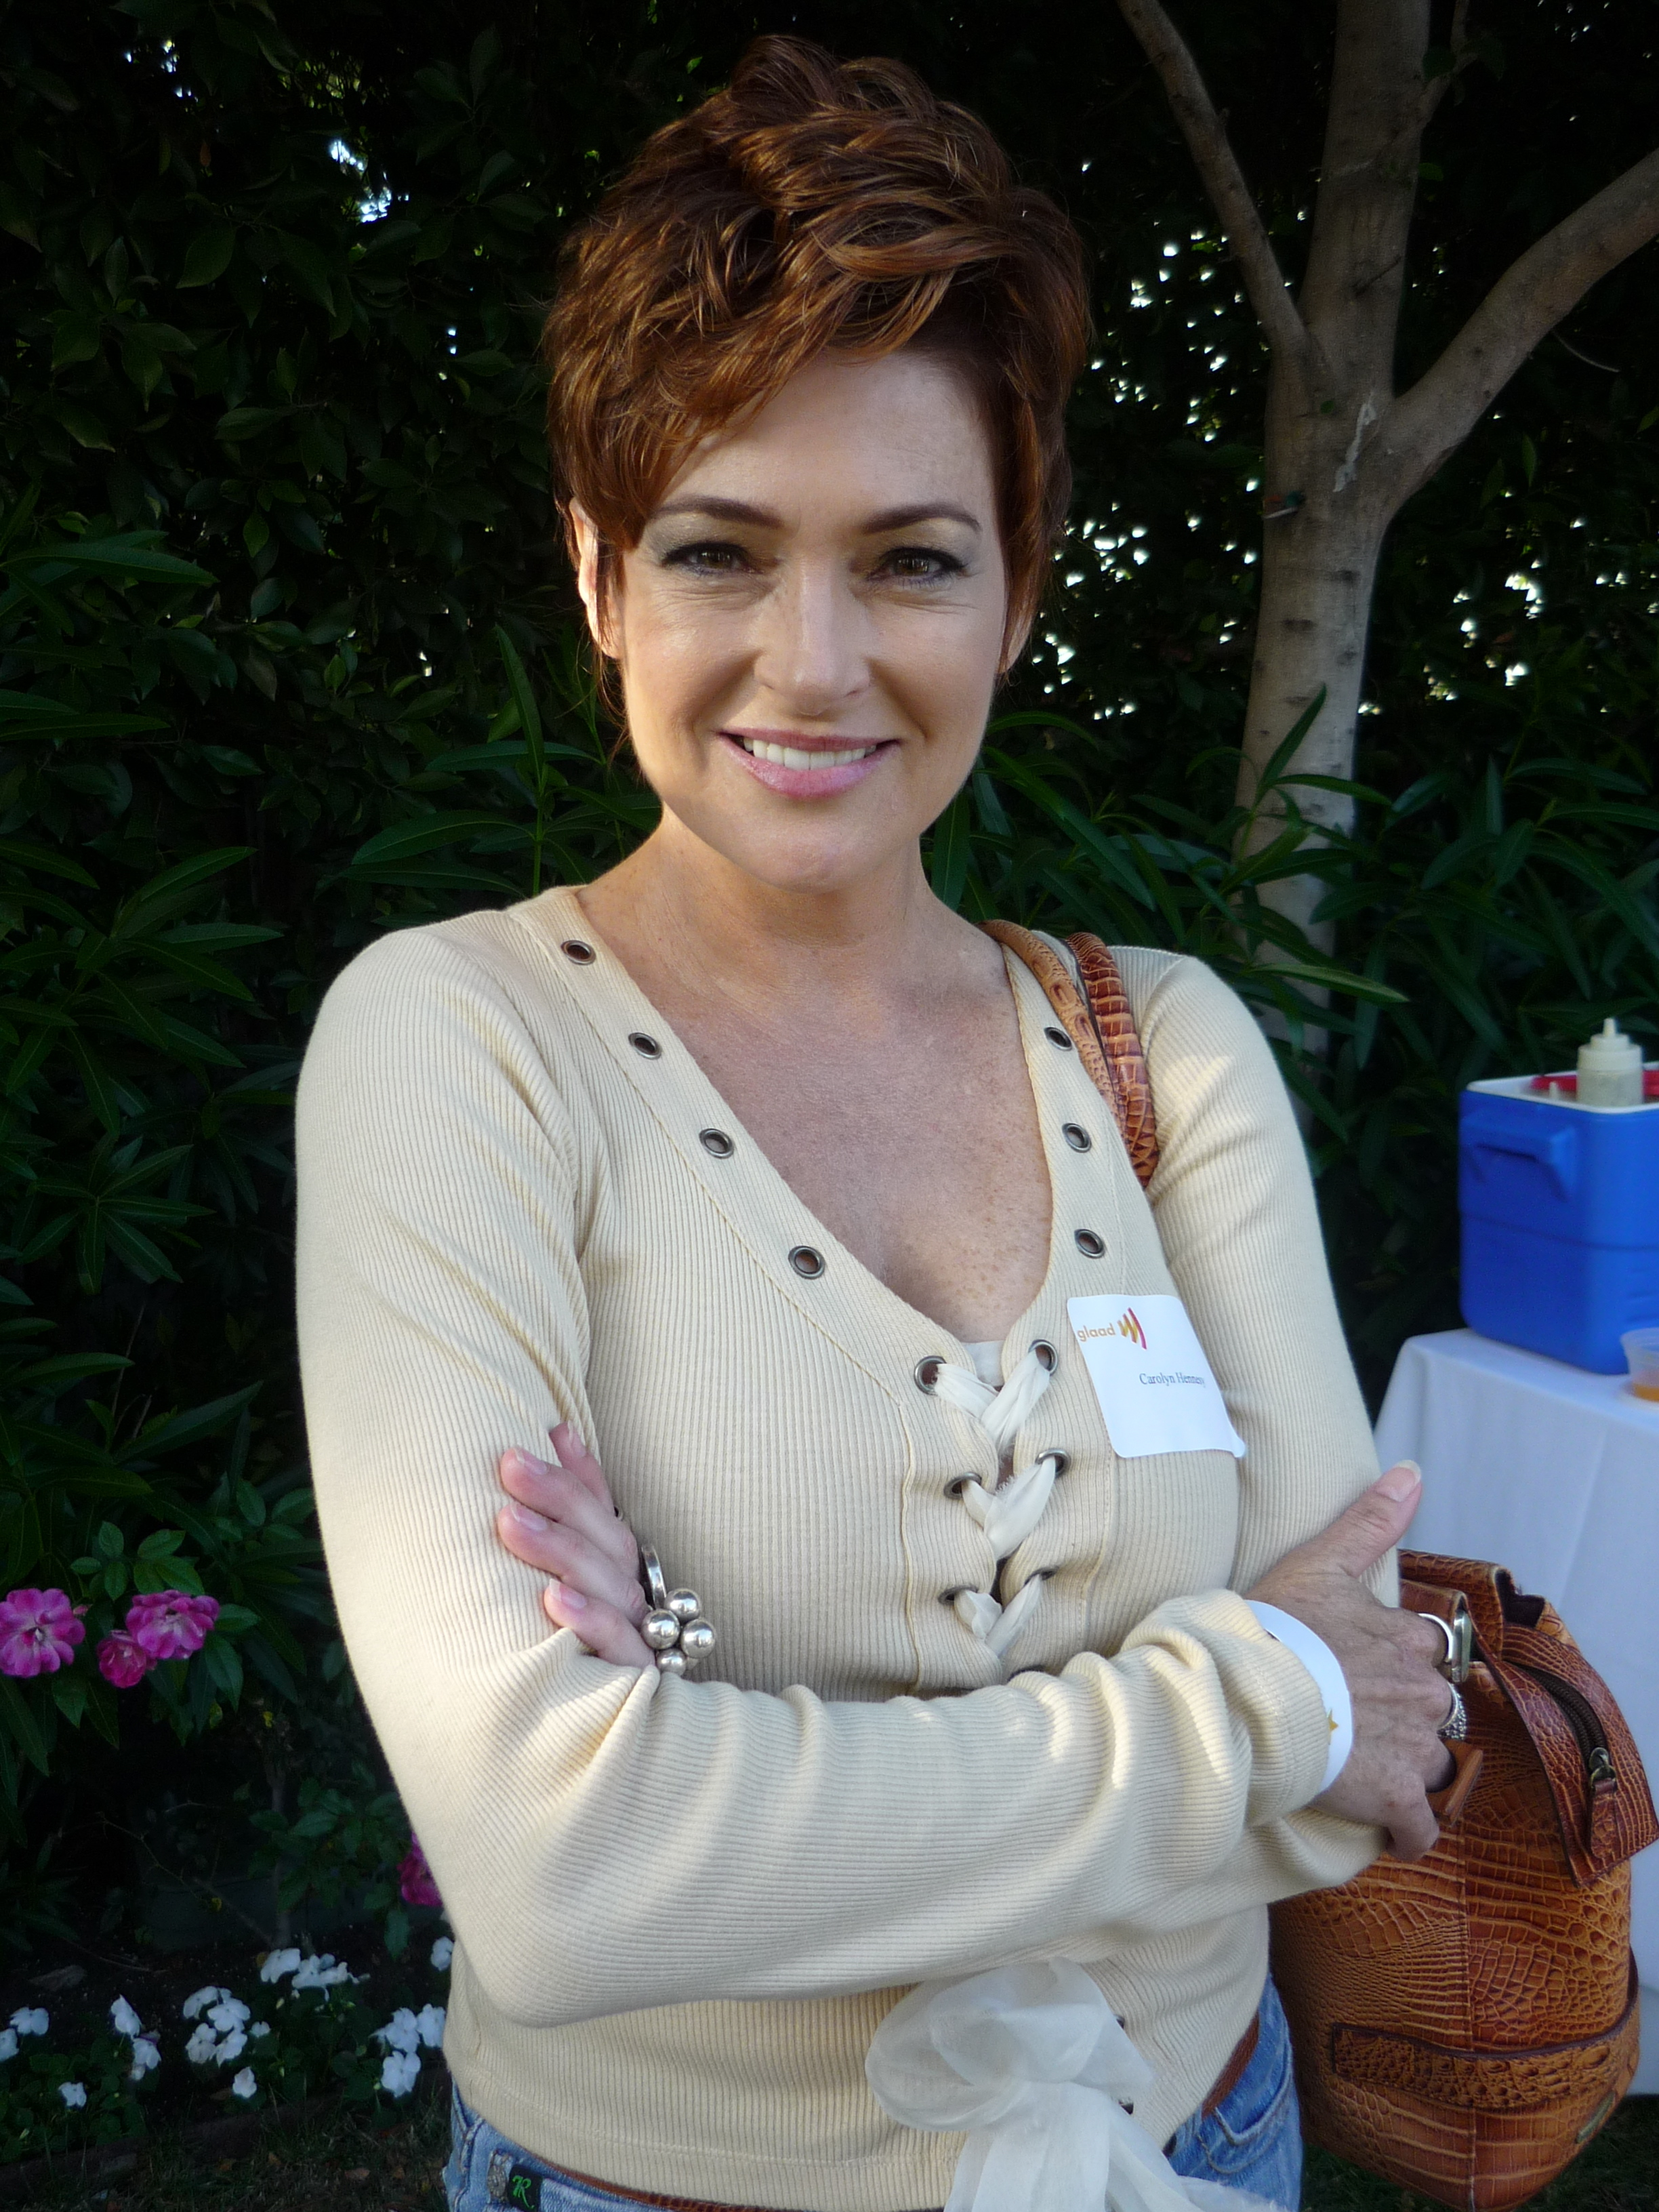 carolyn hennesy imdbcarolyn hennesy 2016, carolyn hennesy, carolyn hennesy true blood, carolyn hennesy feet, carolyn hennesy age, carolyn hennesy hot, carolyn hennesy net worth, carolyn hennesy imdb, carolyn hennesy movies and tv shows, carolyn hennesy pandora, carolyn hennesy books, carolyn hennesy instagram, carolyn hennesy measurements, carolyn hennesy revenge, carolyn hennesy that 70s show, carolyn hennesy leaving general hospital, carolyn hennesy hairstyles, carolyn hennesy once upon a time, carolyn hennesy bra size, carolyn hennesy twitter